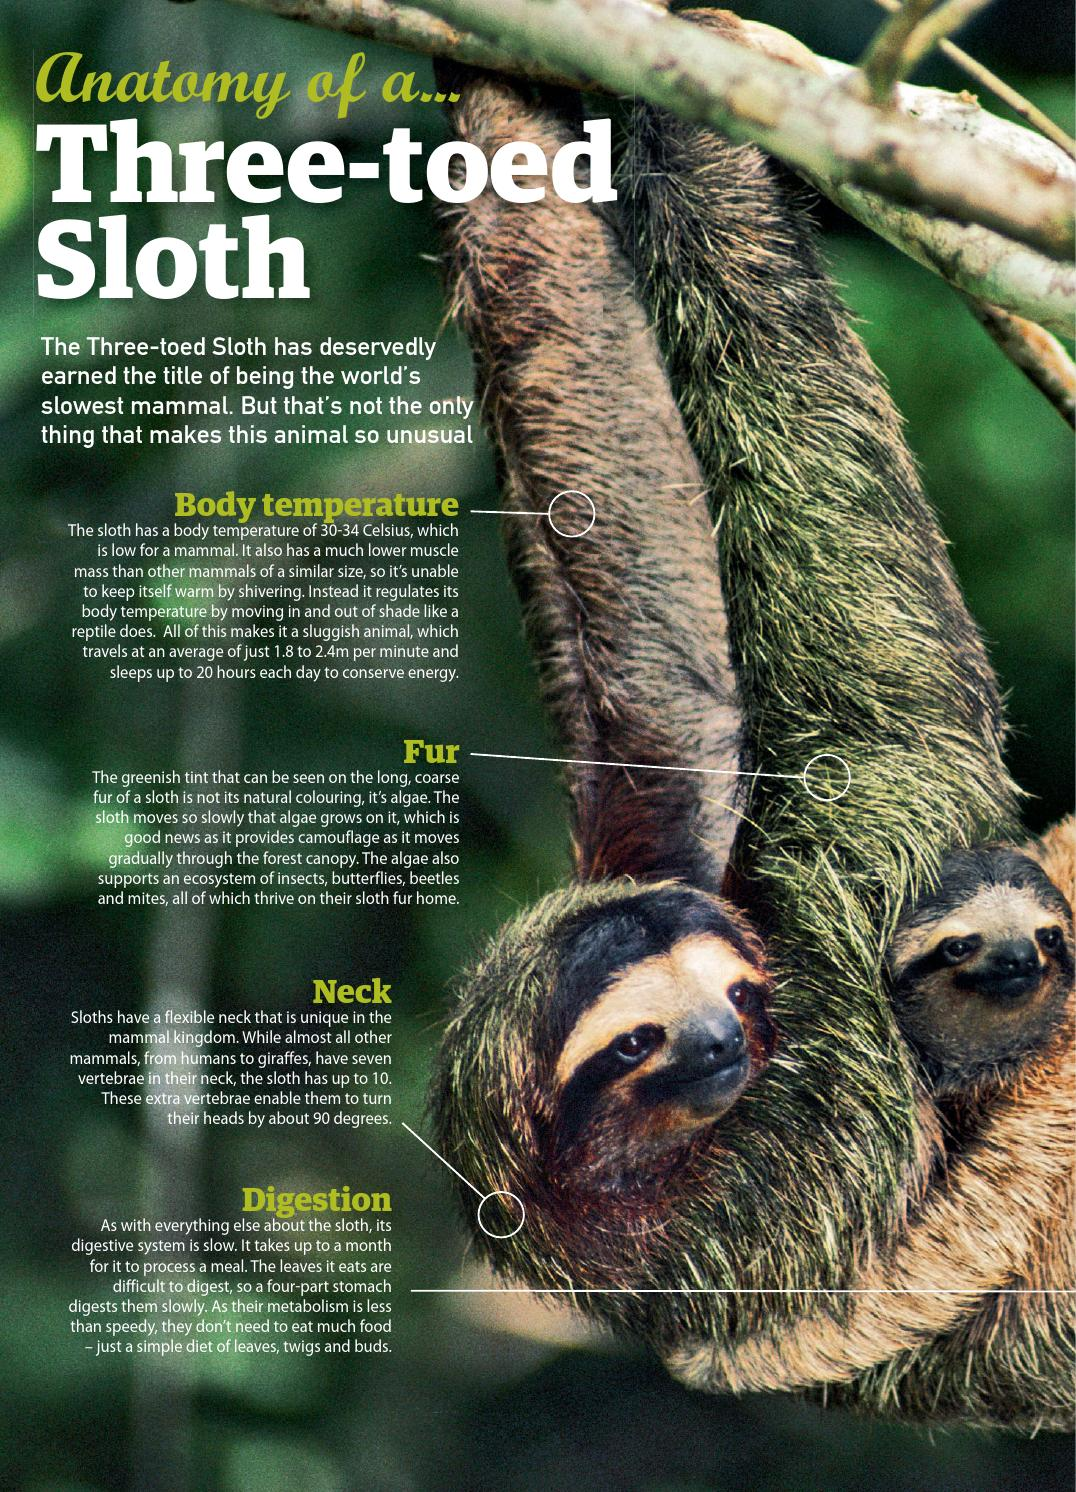 Contemporary Anatomy Of A Sloth Sketch - Anatomy and Physiology ...